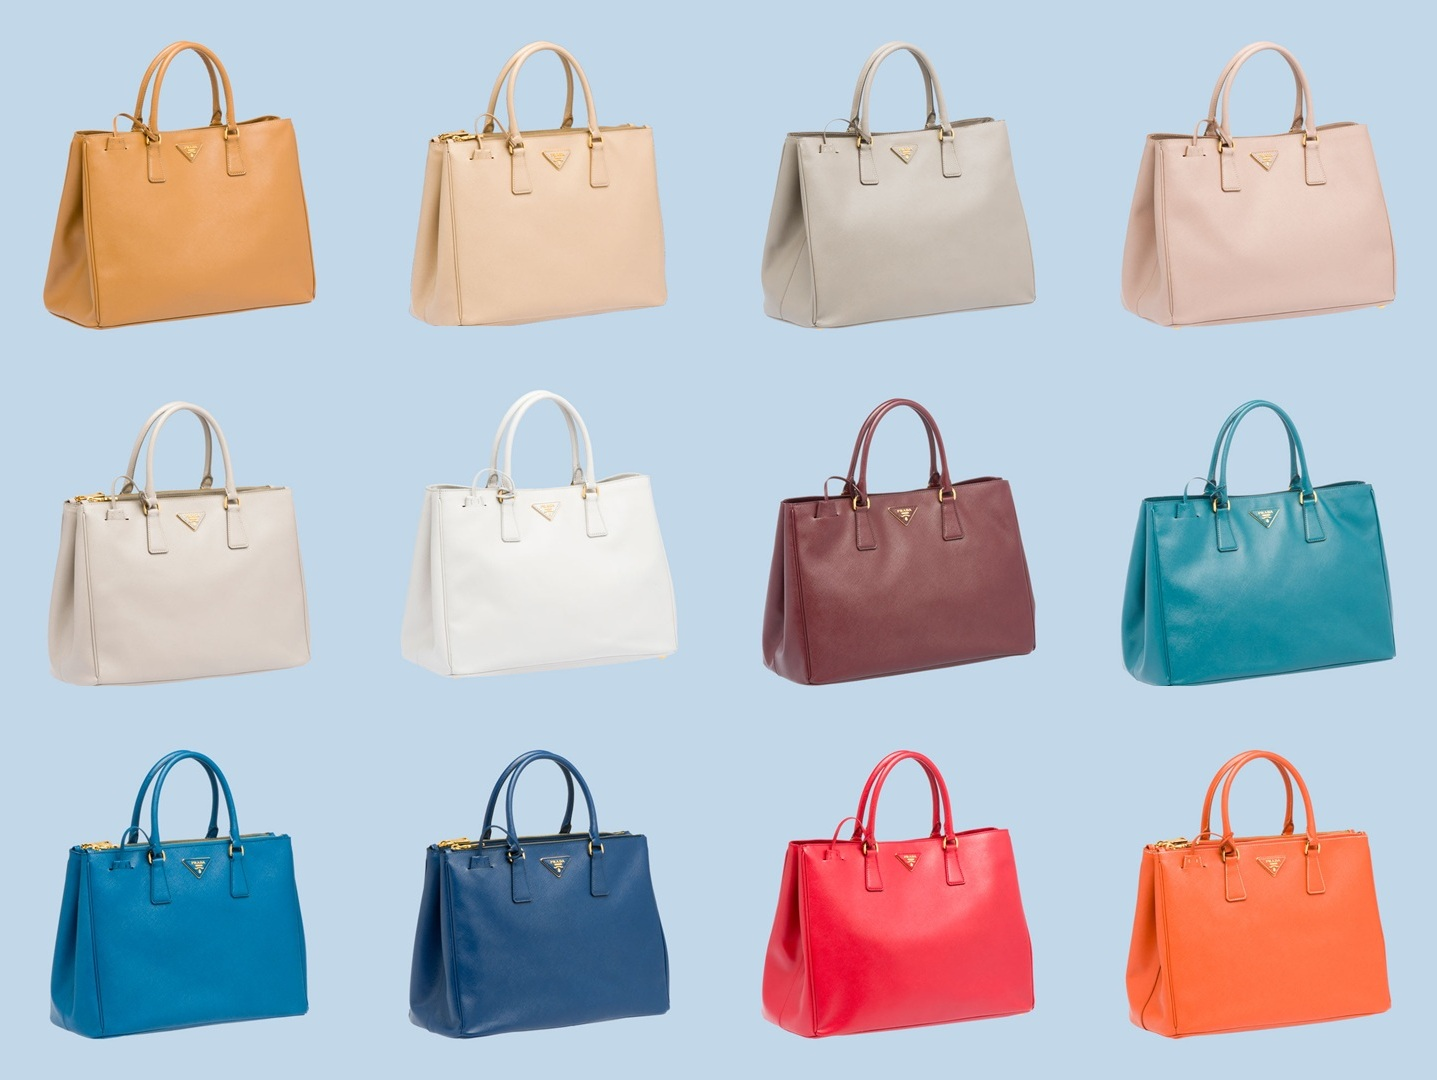 The Hottest Bags of 2012: The Designer Edition